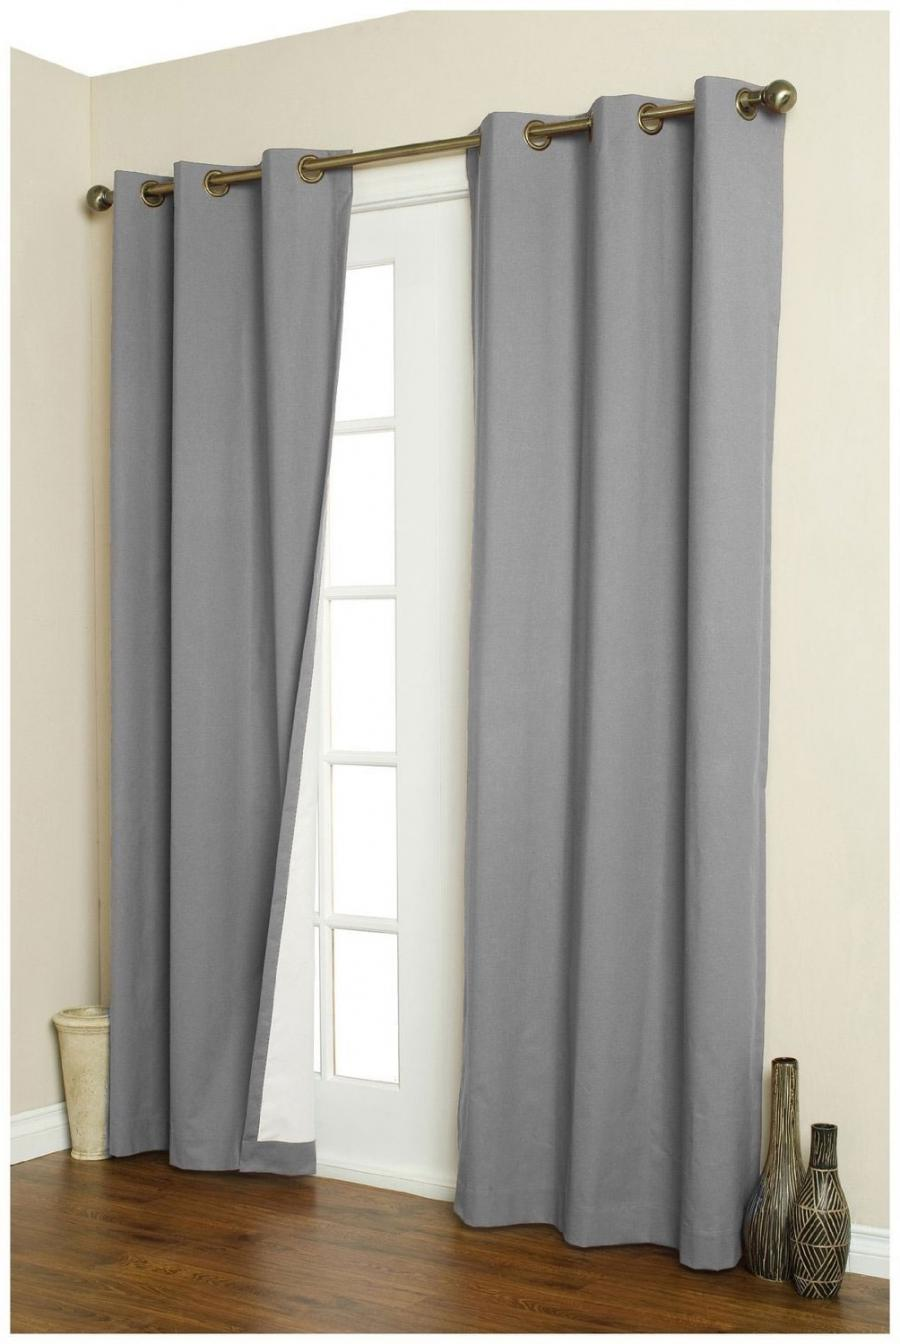 Photos french door curtains for Curtains for french doors ideas